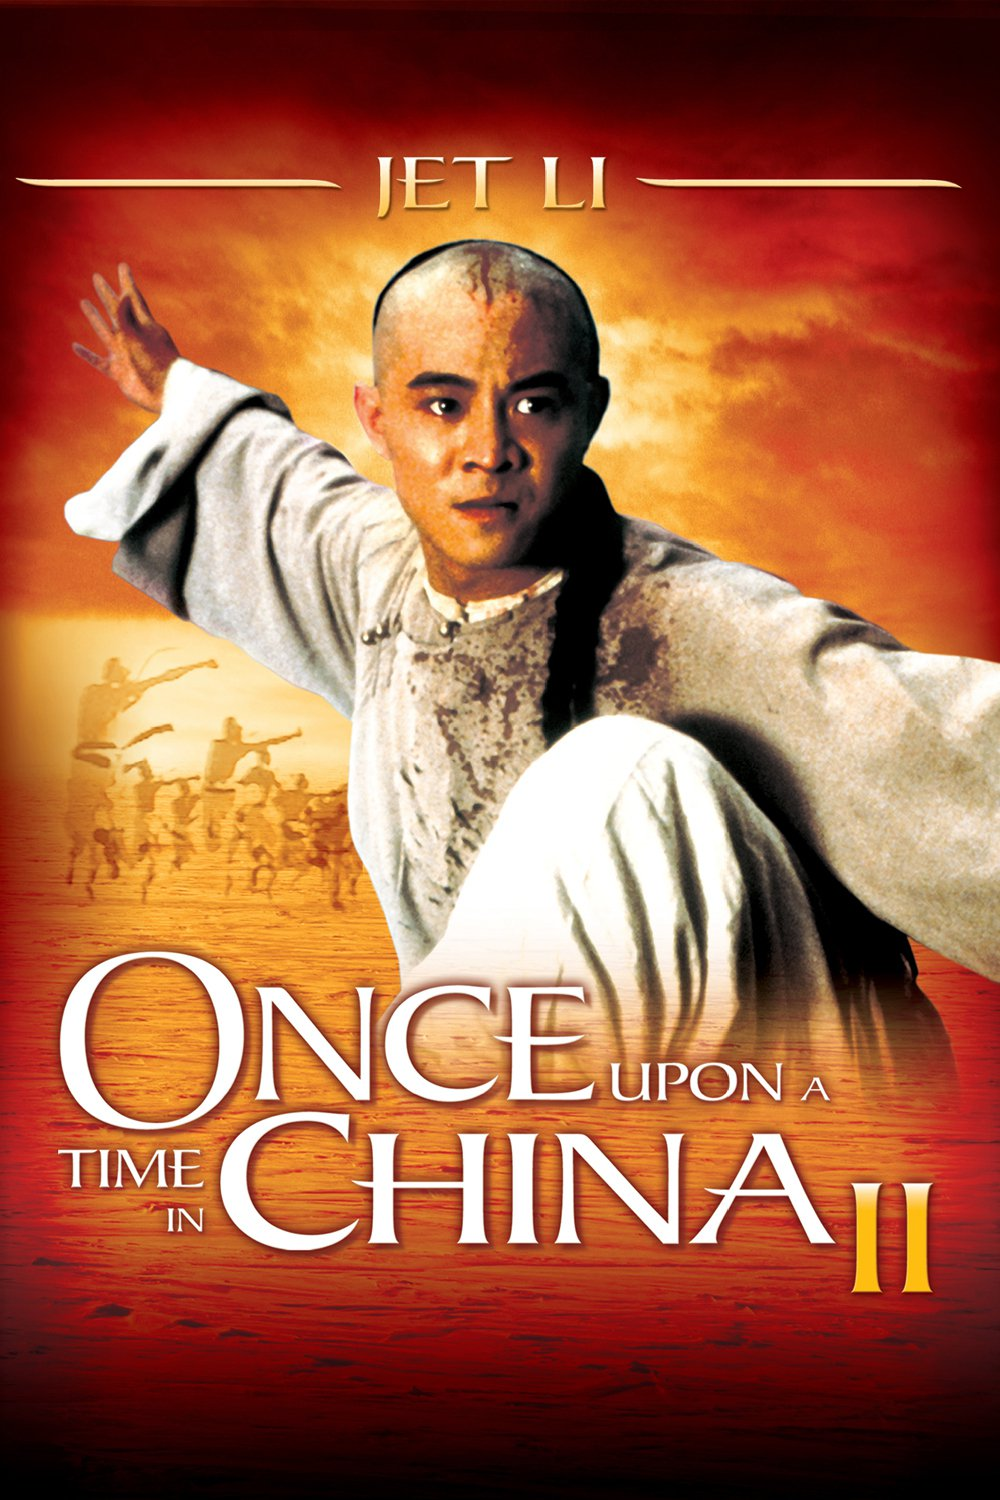 Poster for Once Upon a Time in China II